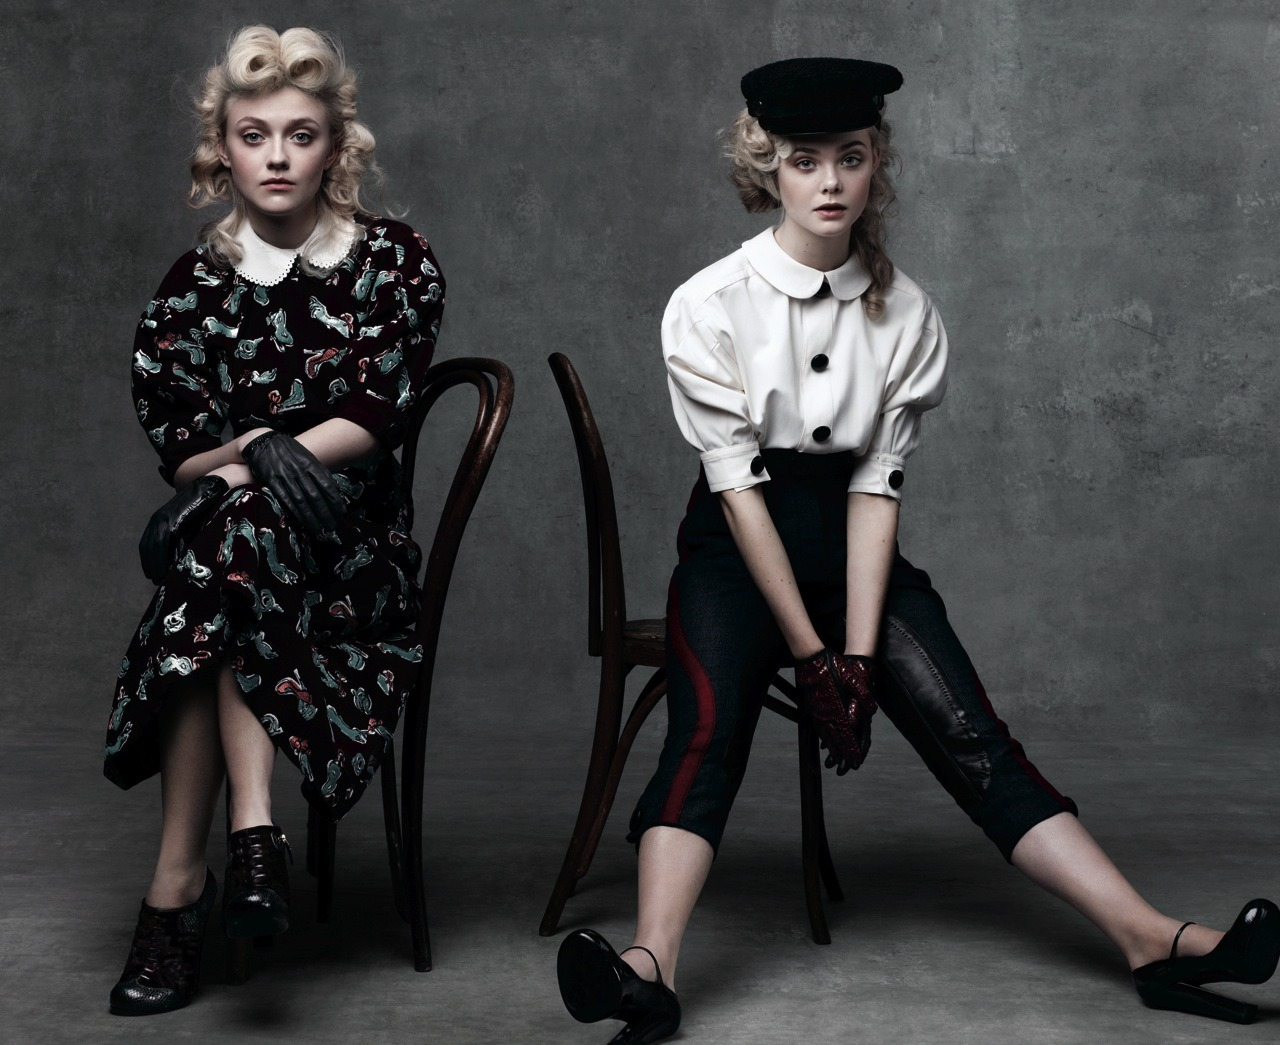 vogue:  Dakota and Elle Fanning Photographed by Craig McDean for the August Issue of Vogue